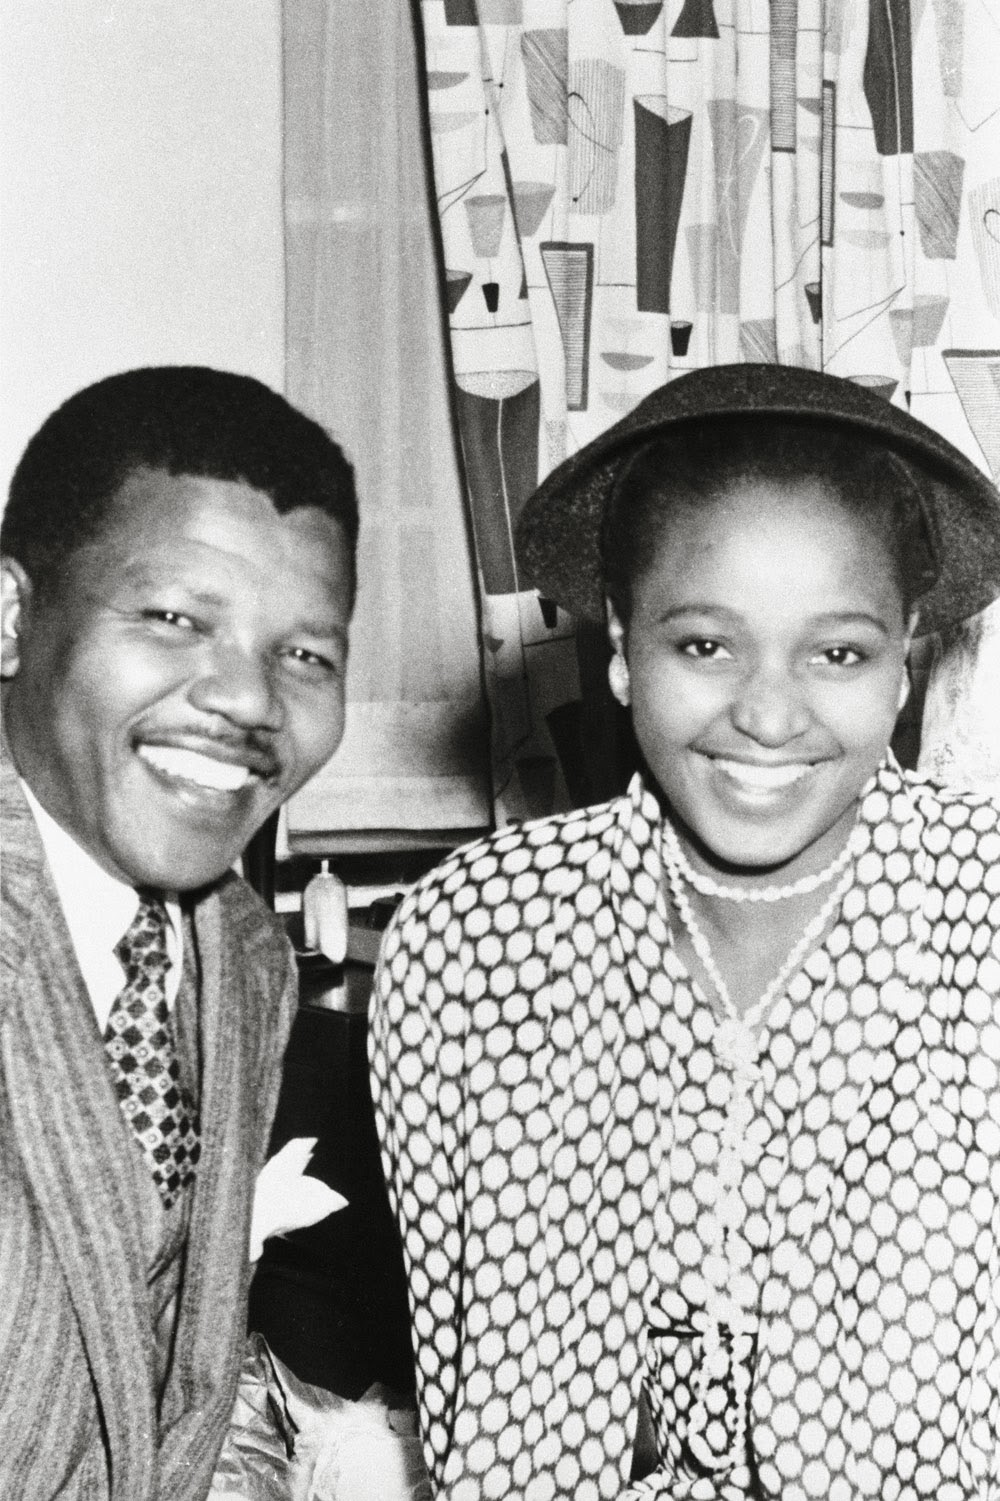 R.I.P Nelson Mandela (1918-2013): A Life in Photographs ...